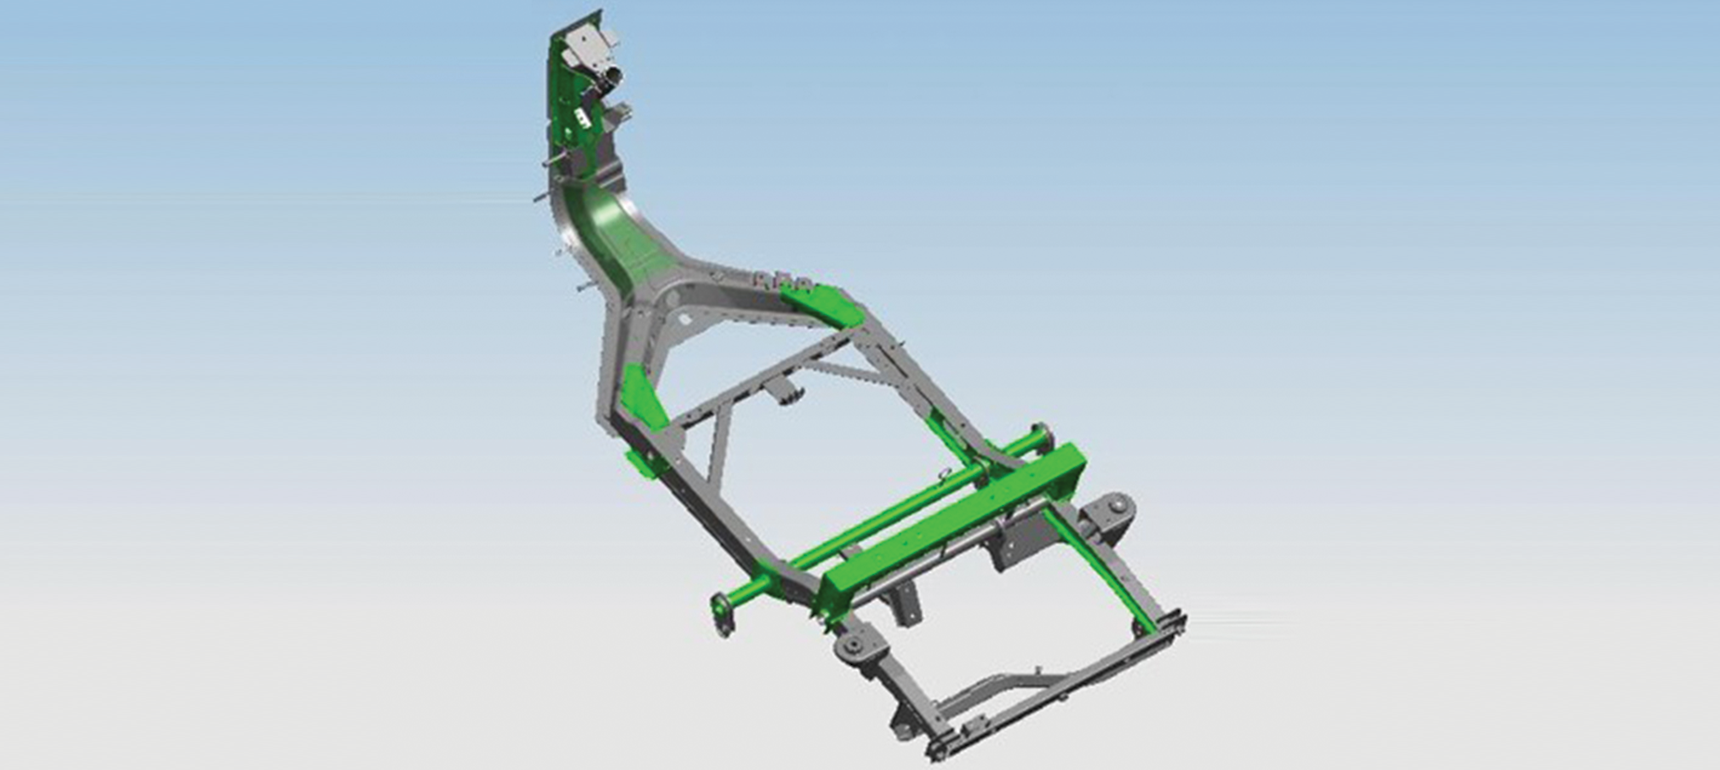 N-Strong-Chassis-1720x770